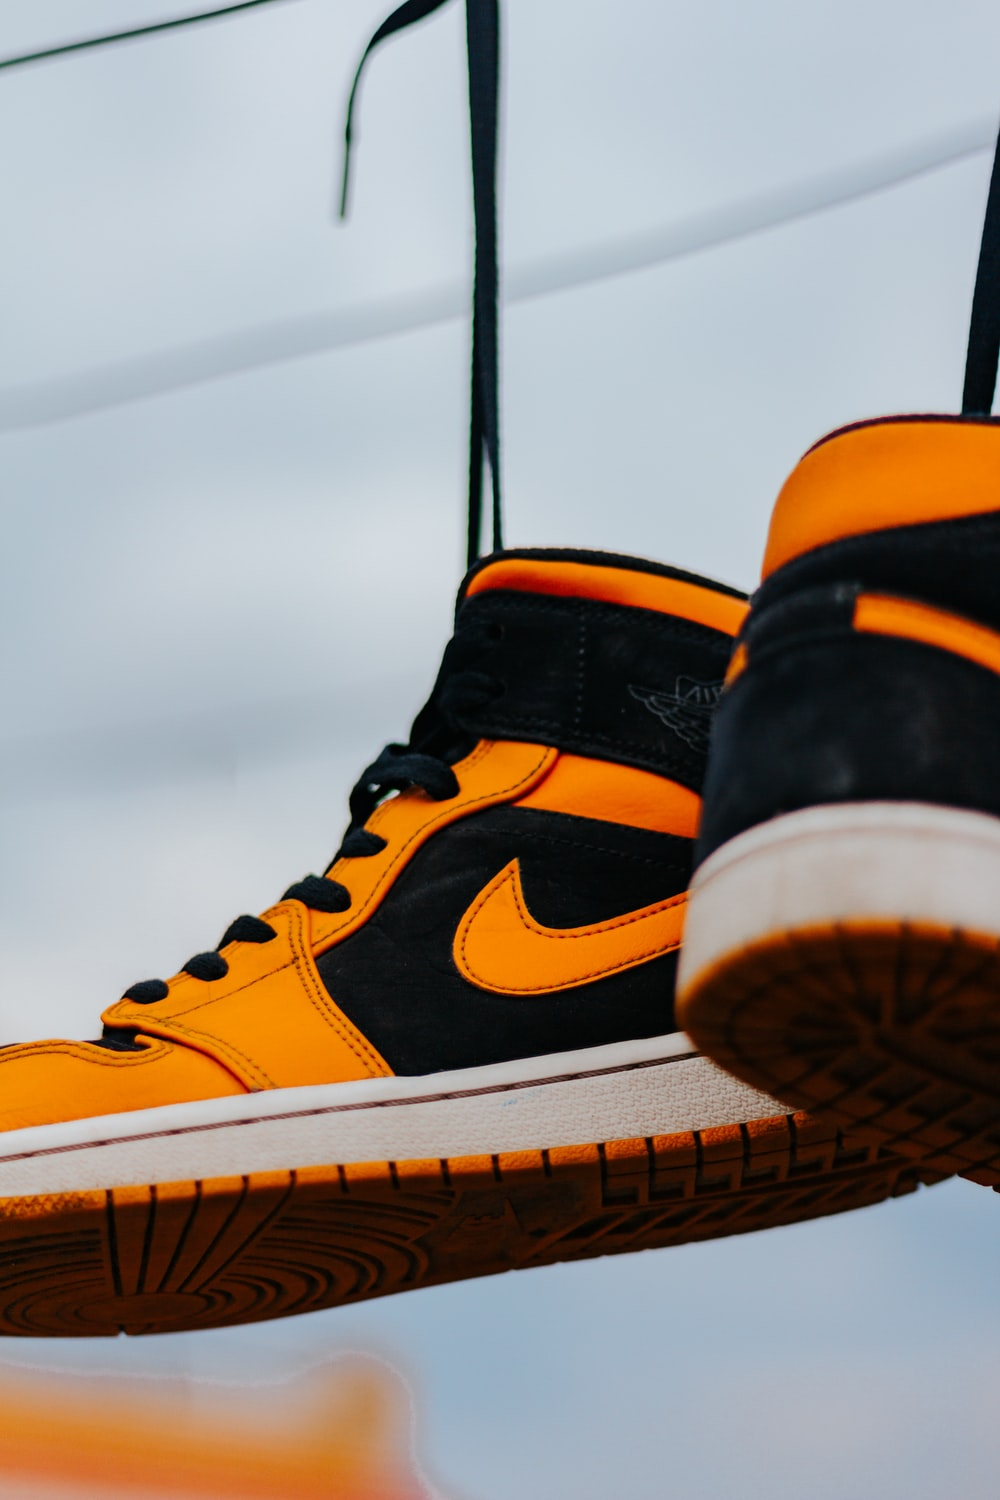 person wearing orange and black nike high top sneakers